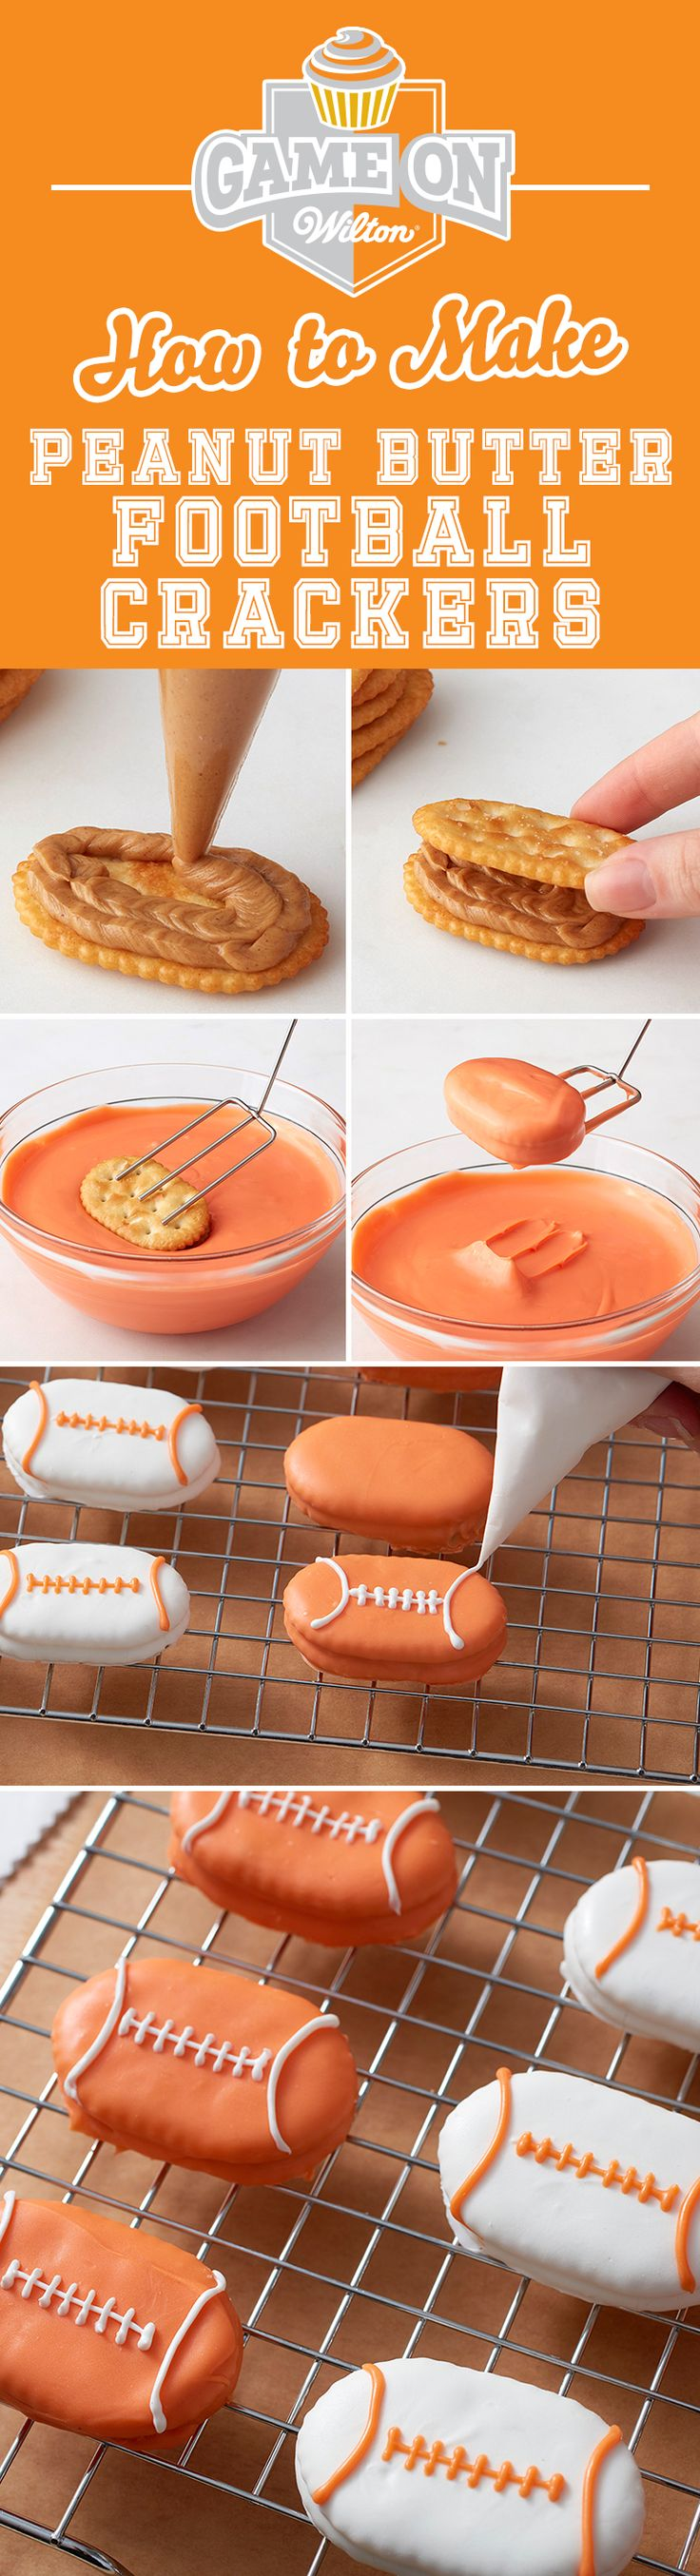 How to Make Peanut Butter Football Crackers - Melt Peanut Butter Candy Melts Candy and sandwich between two crackers. Then dip in melted Orange or White Candy Melts Candy and pipe lines to make it look like a football ball! These little sandwiches make a great snack for youth football teams and fans, or whenever you're watching the big game!